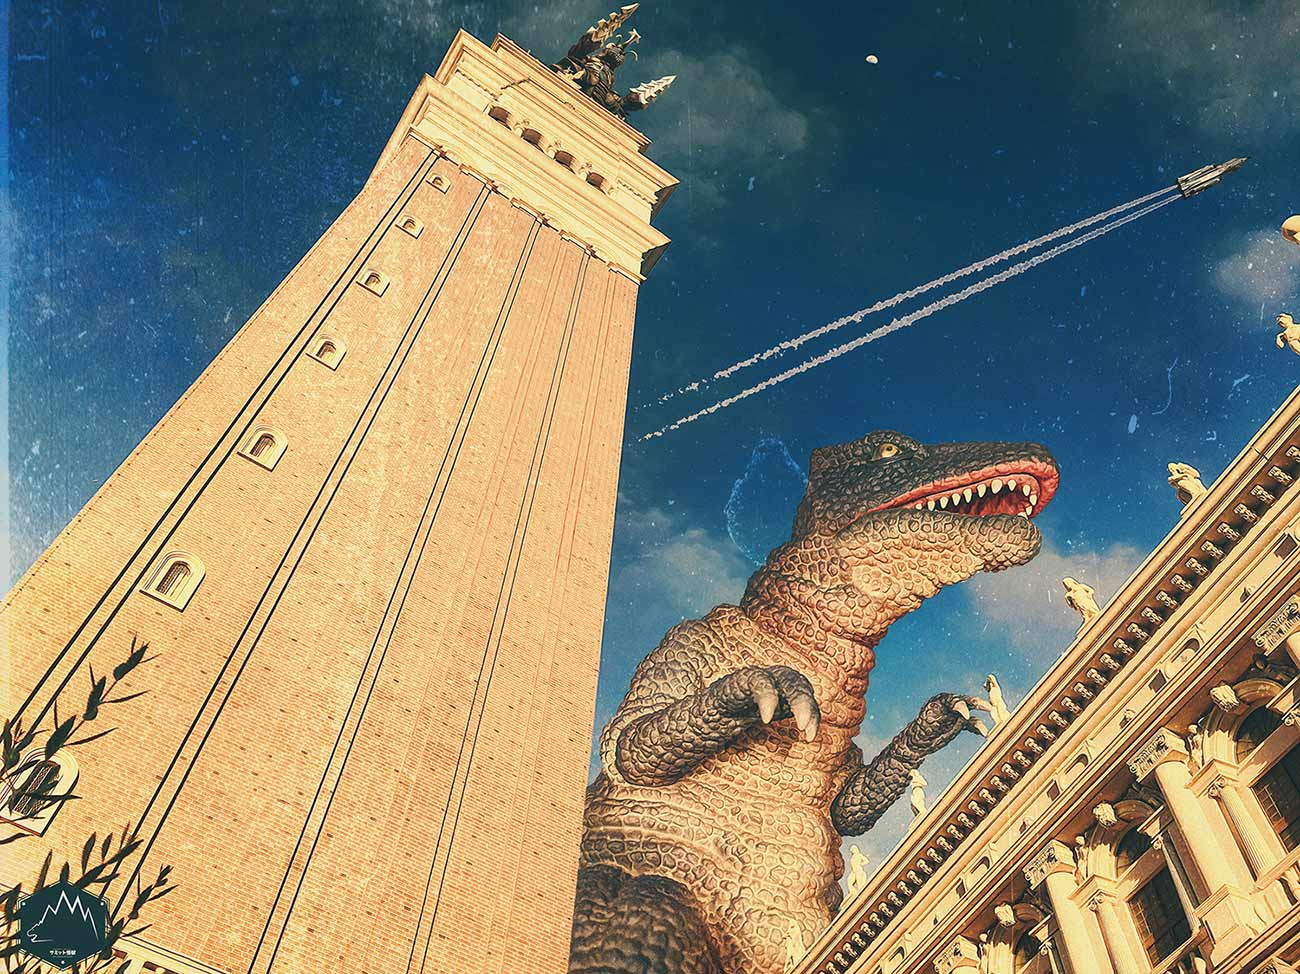 Composite featuring X-Plus Gorosaurus by Jeremy Soles. Copyright: Jeremy Soles.